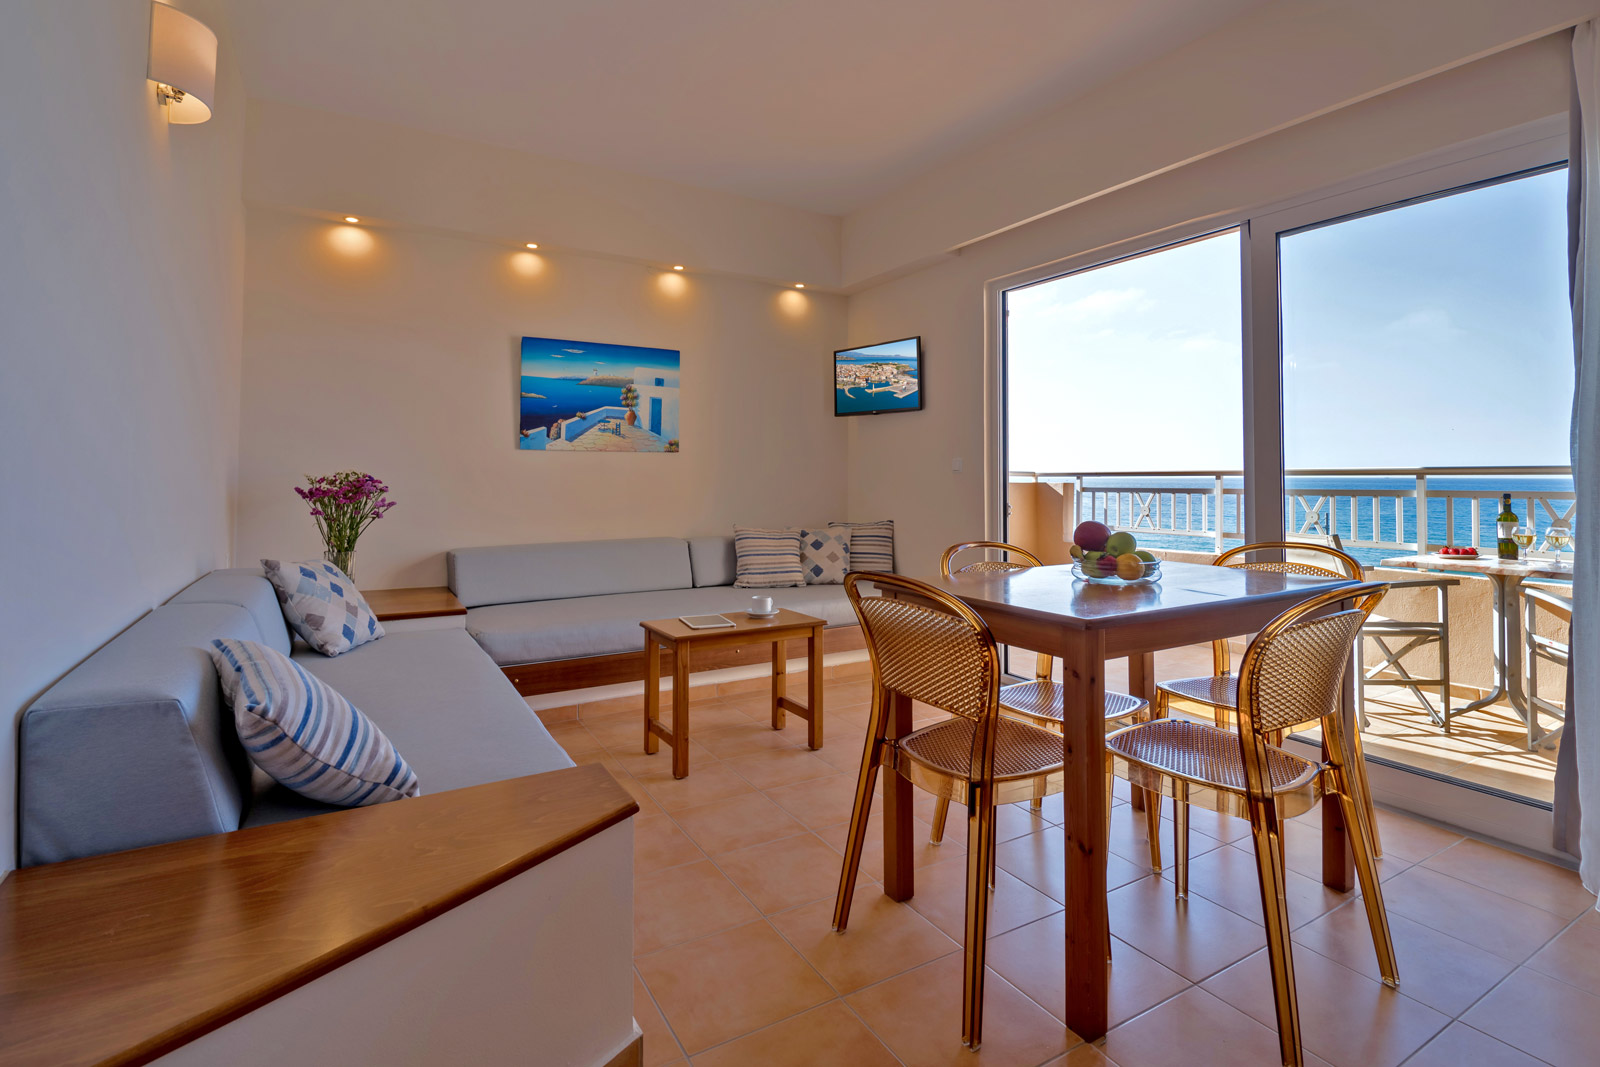 Suite roomwith sea view balconi, sofa and table